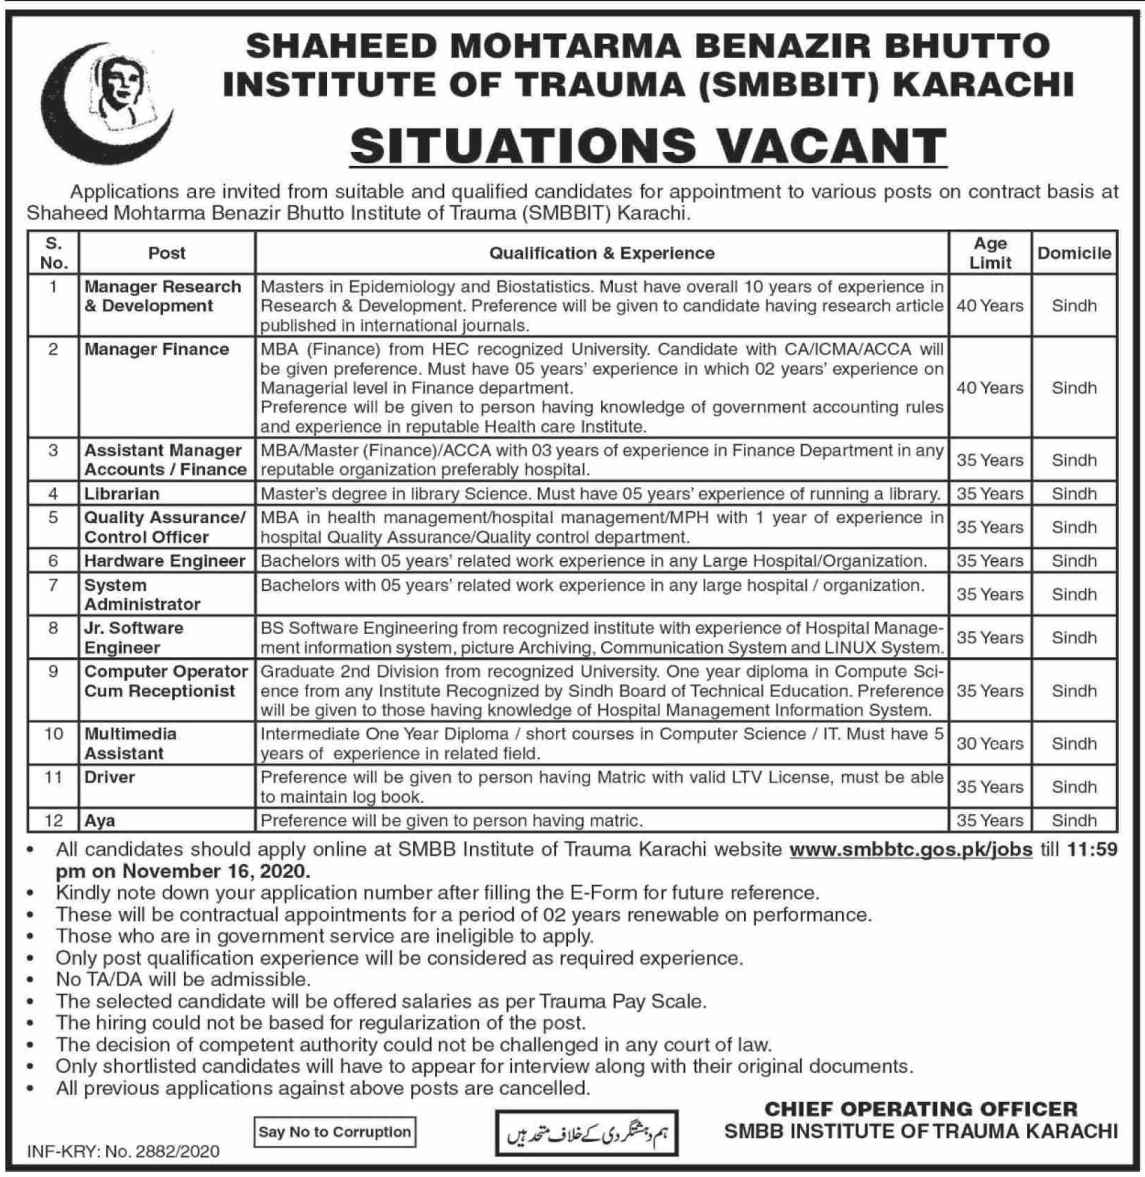 Shaheed Mohtarma Benazir Bhutto Institute of Trauma Jobs 2020 Sindh